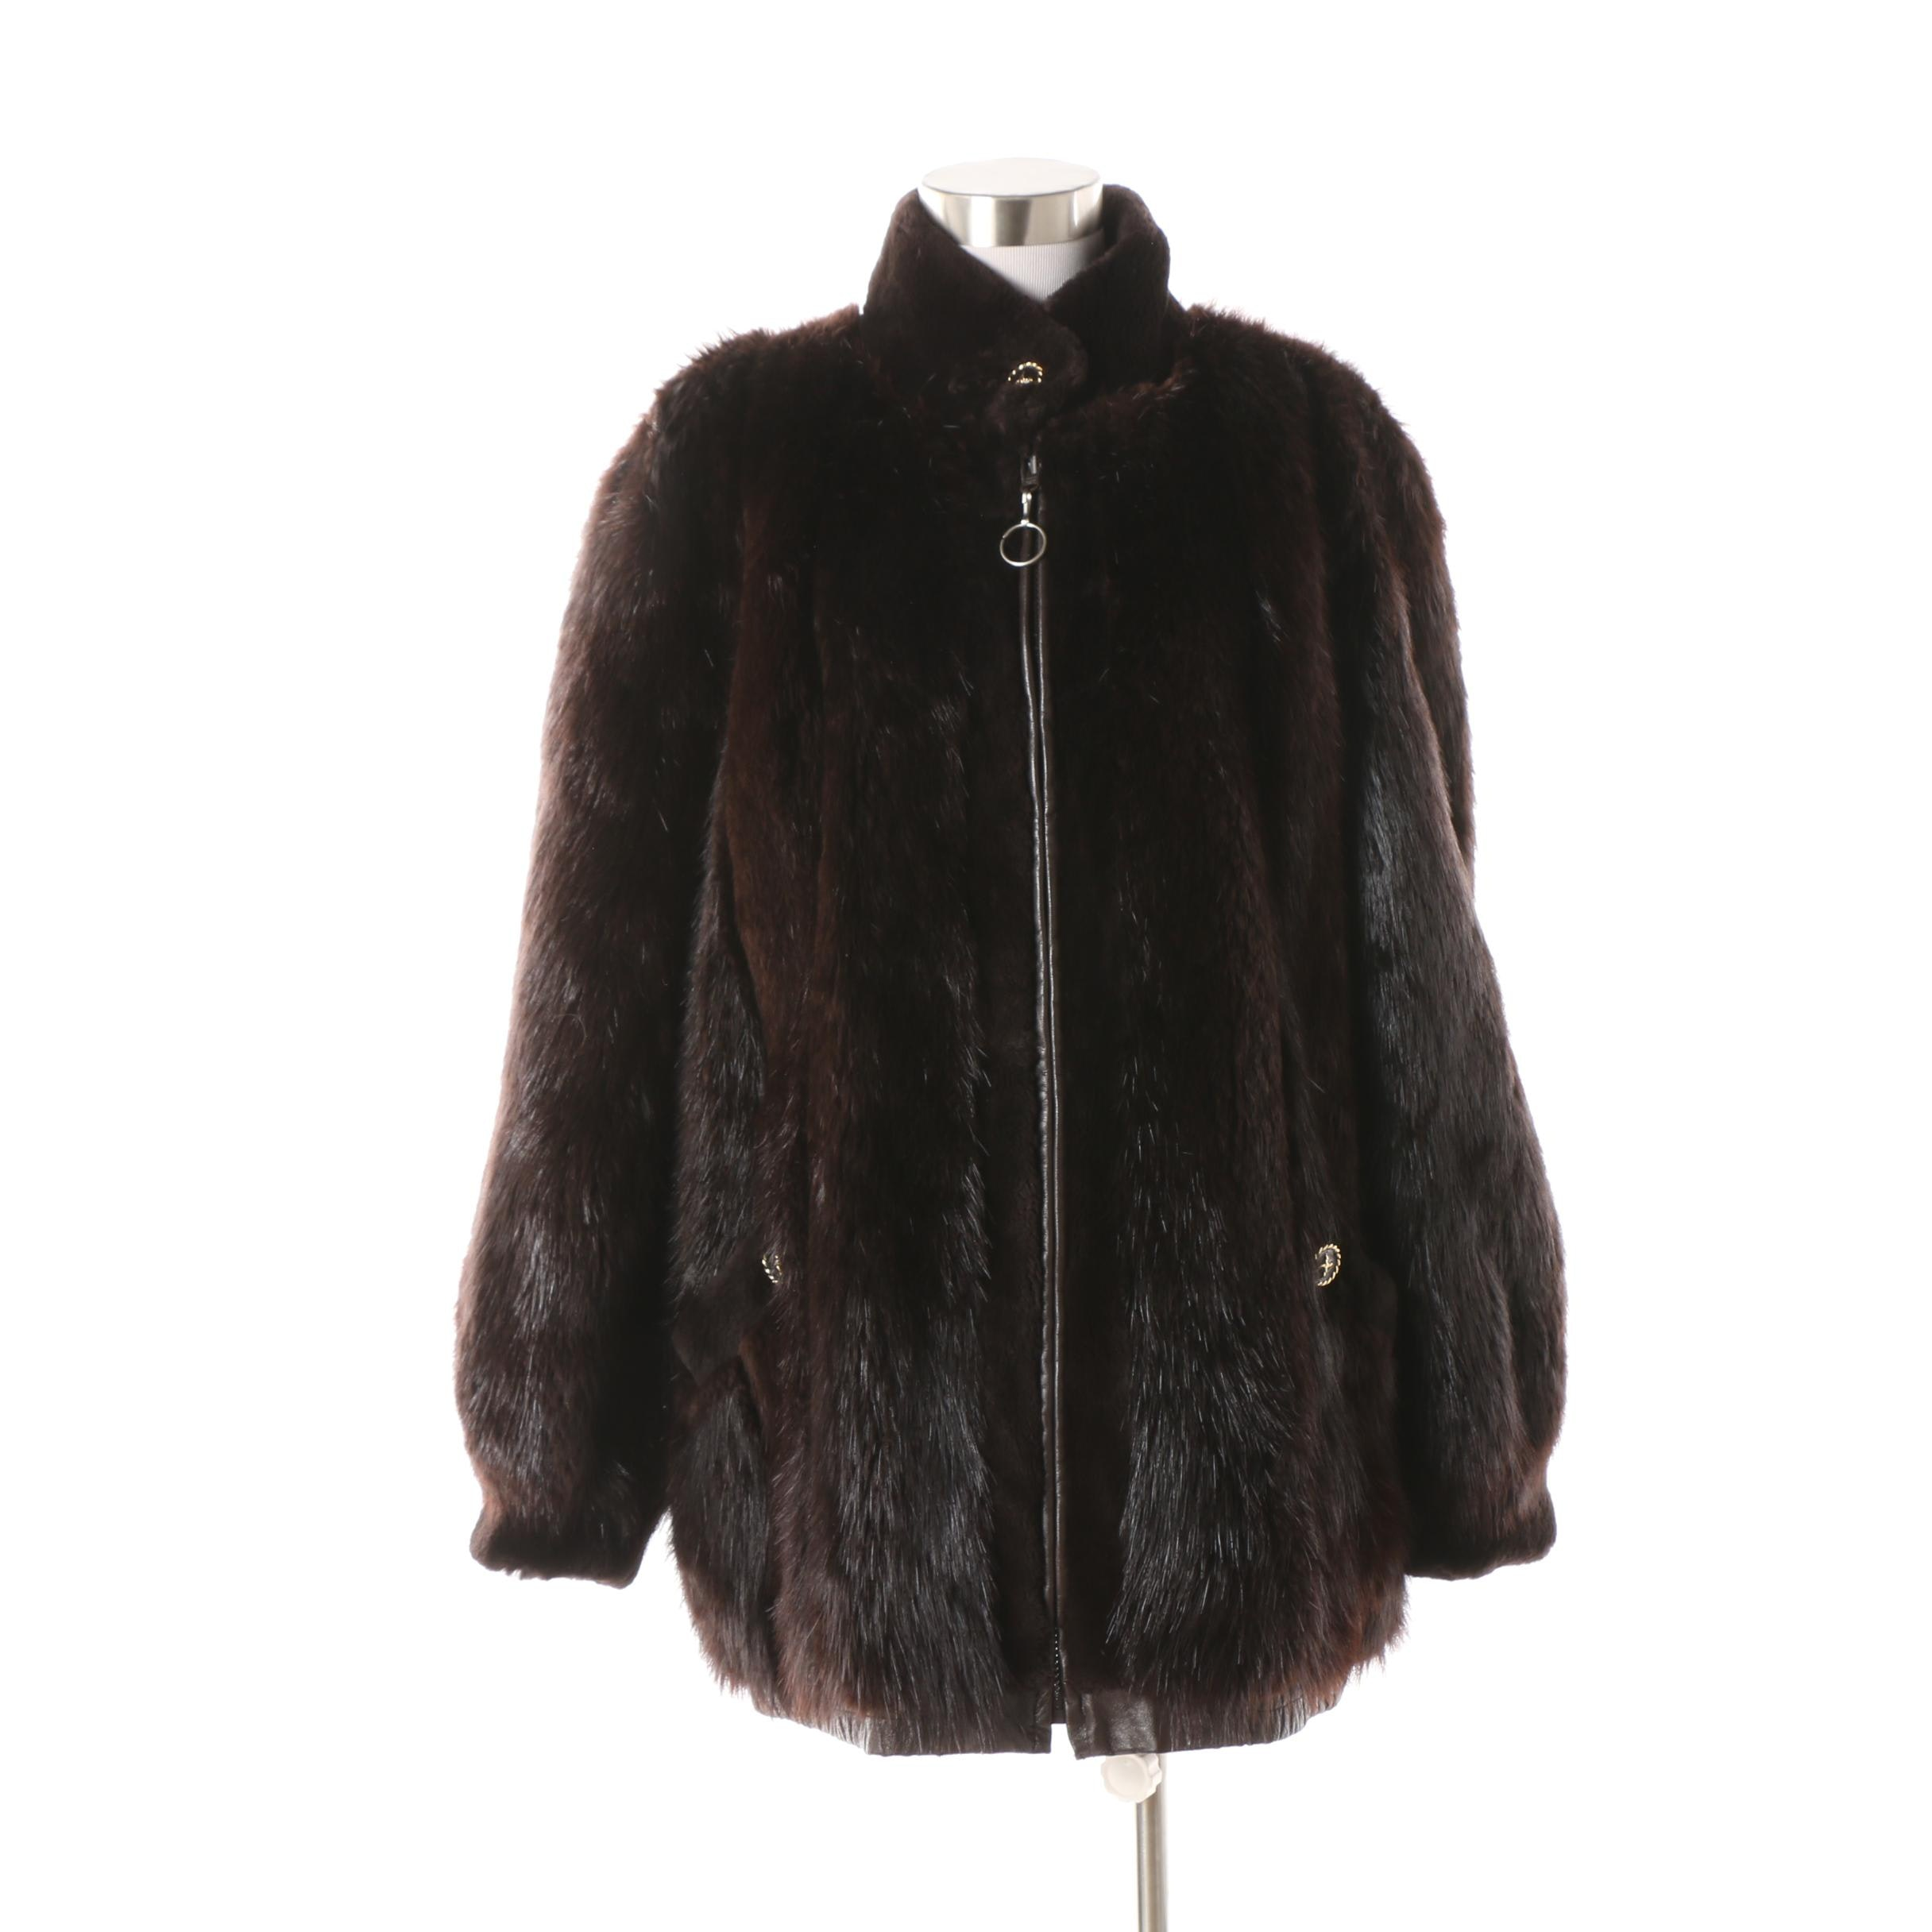 1980s Vintage O'Brien & Sons Furs Beaver Fur and Leather Reversible Jacket